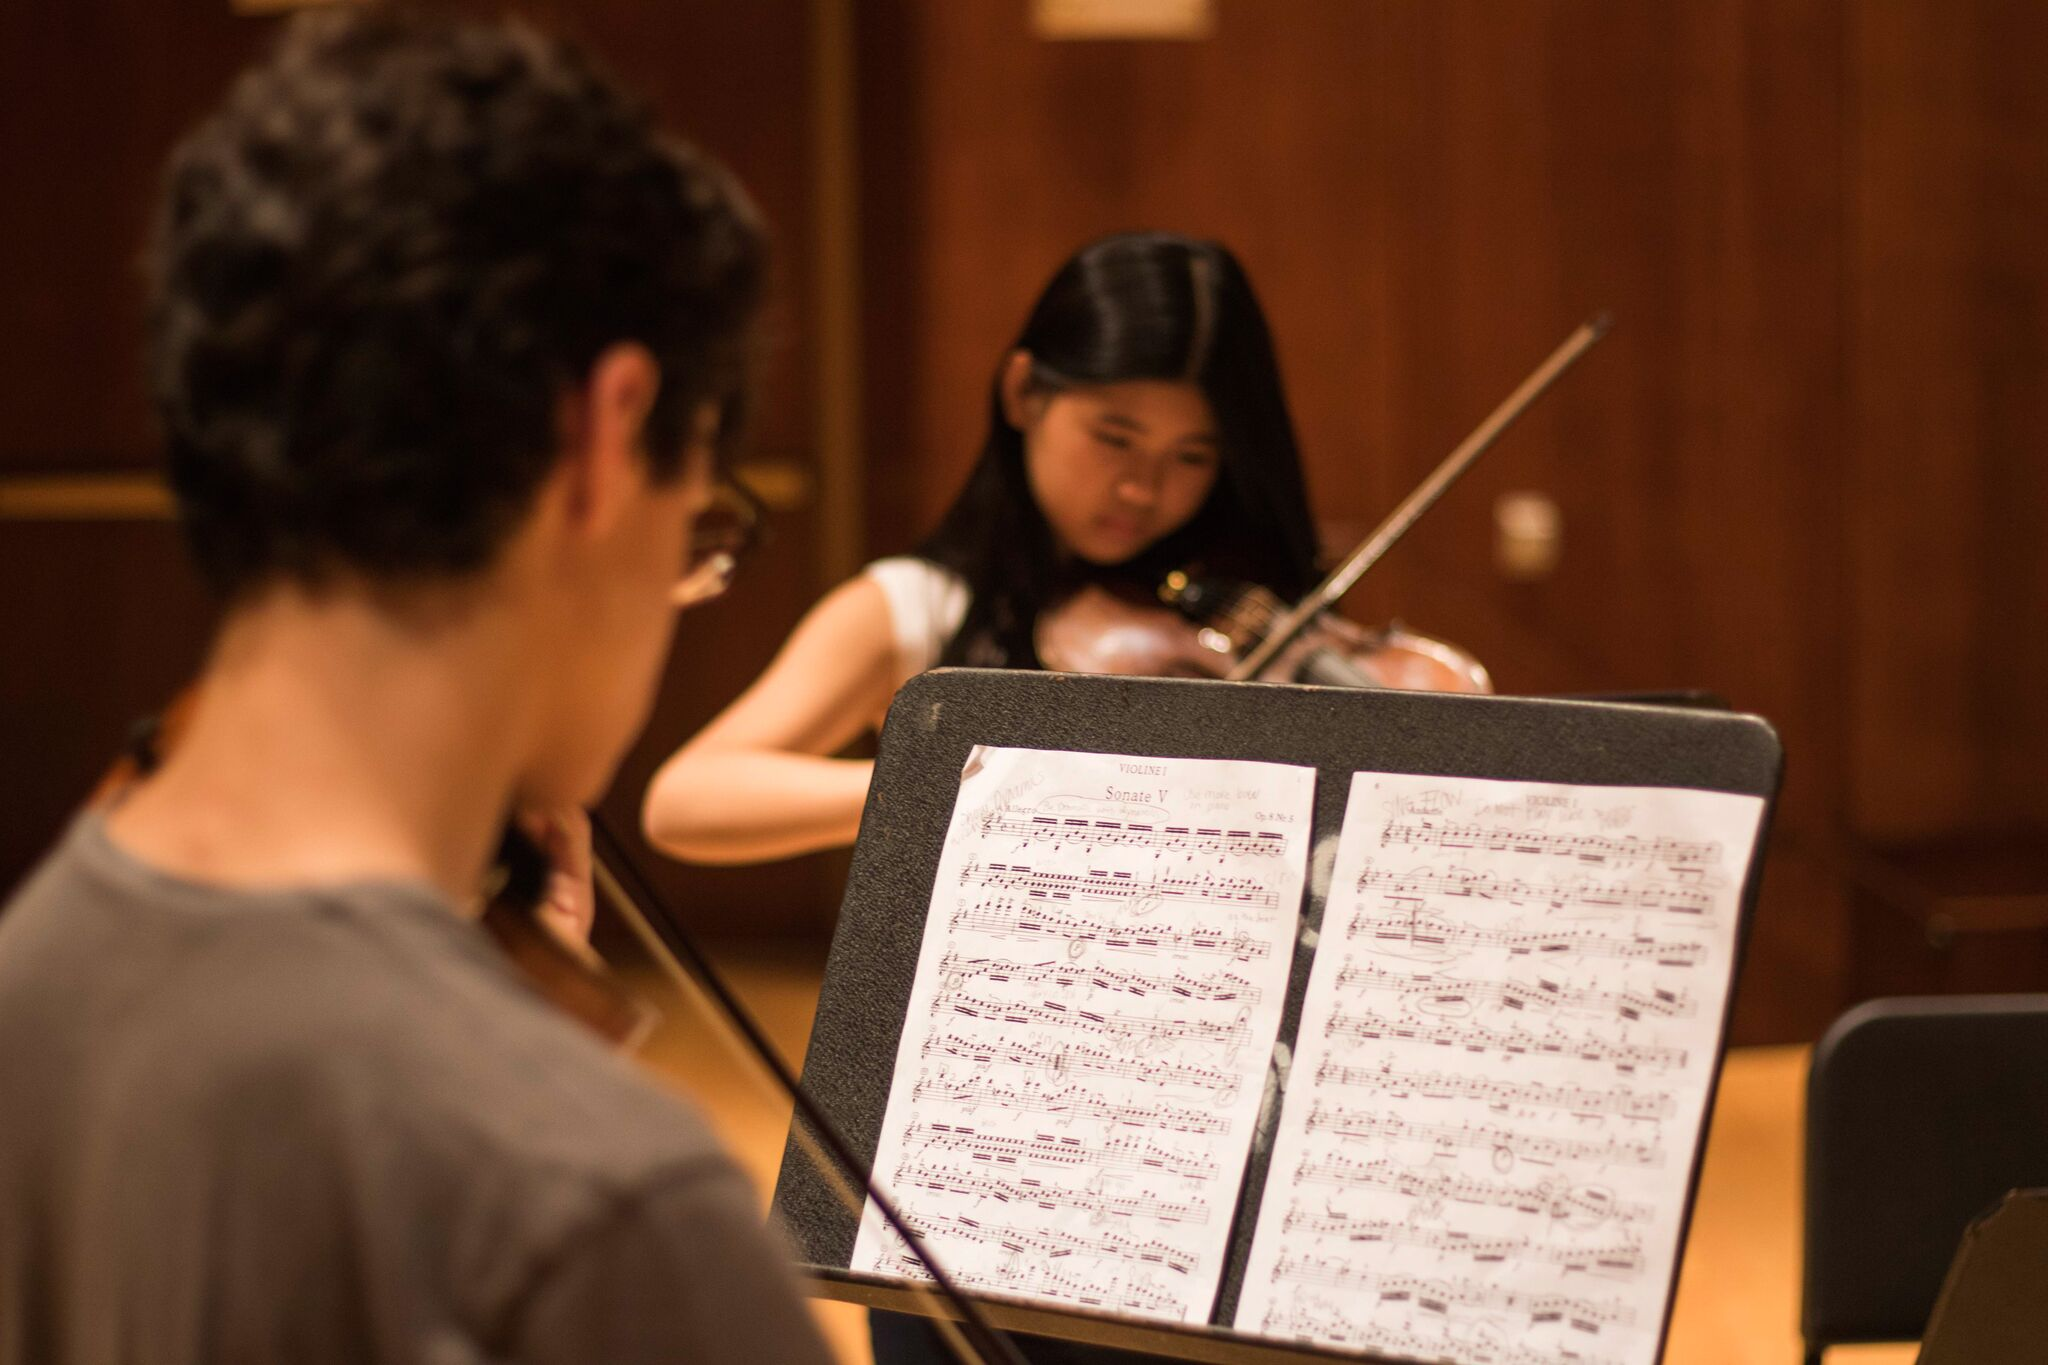 - The Summer Academy is a rigorous 3-week program with a structured environment for students ages 12 through college studying violin, viola, cello, piano, and composition* at intermediate-advanced levels.